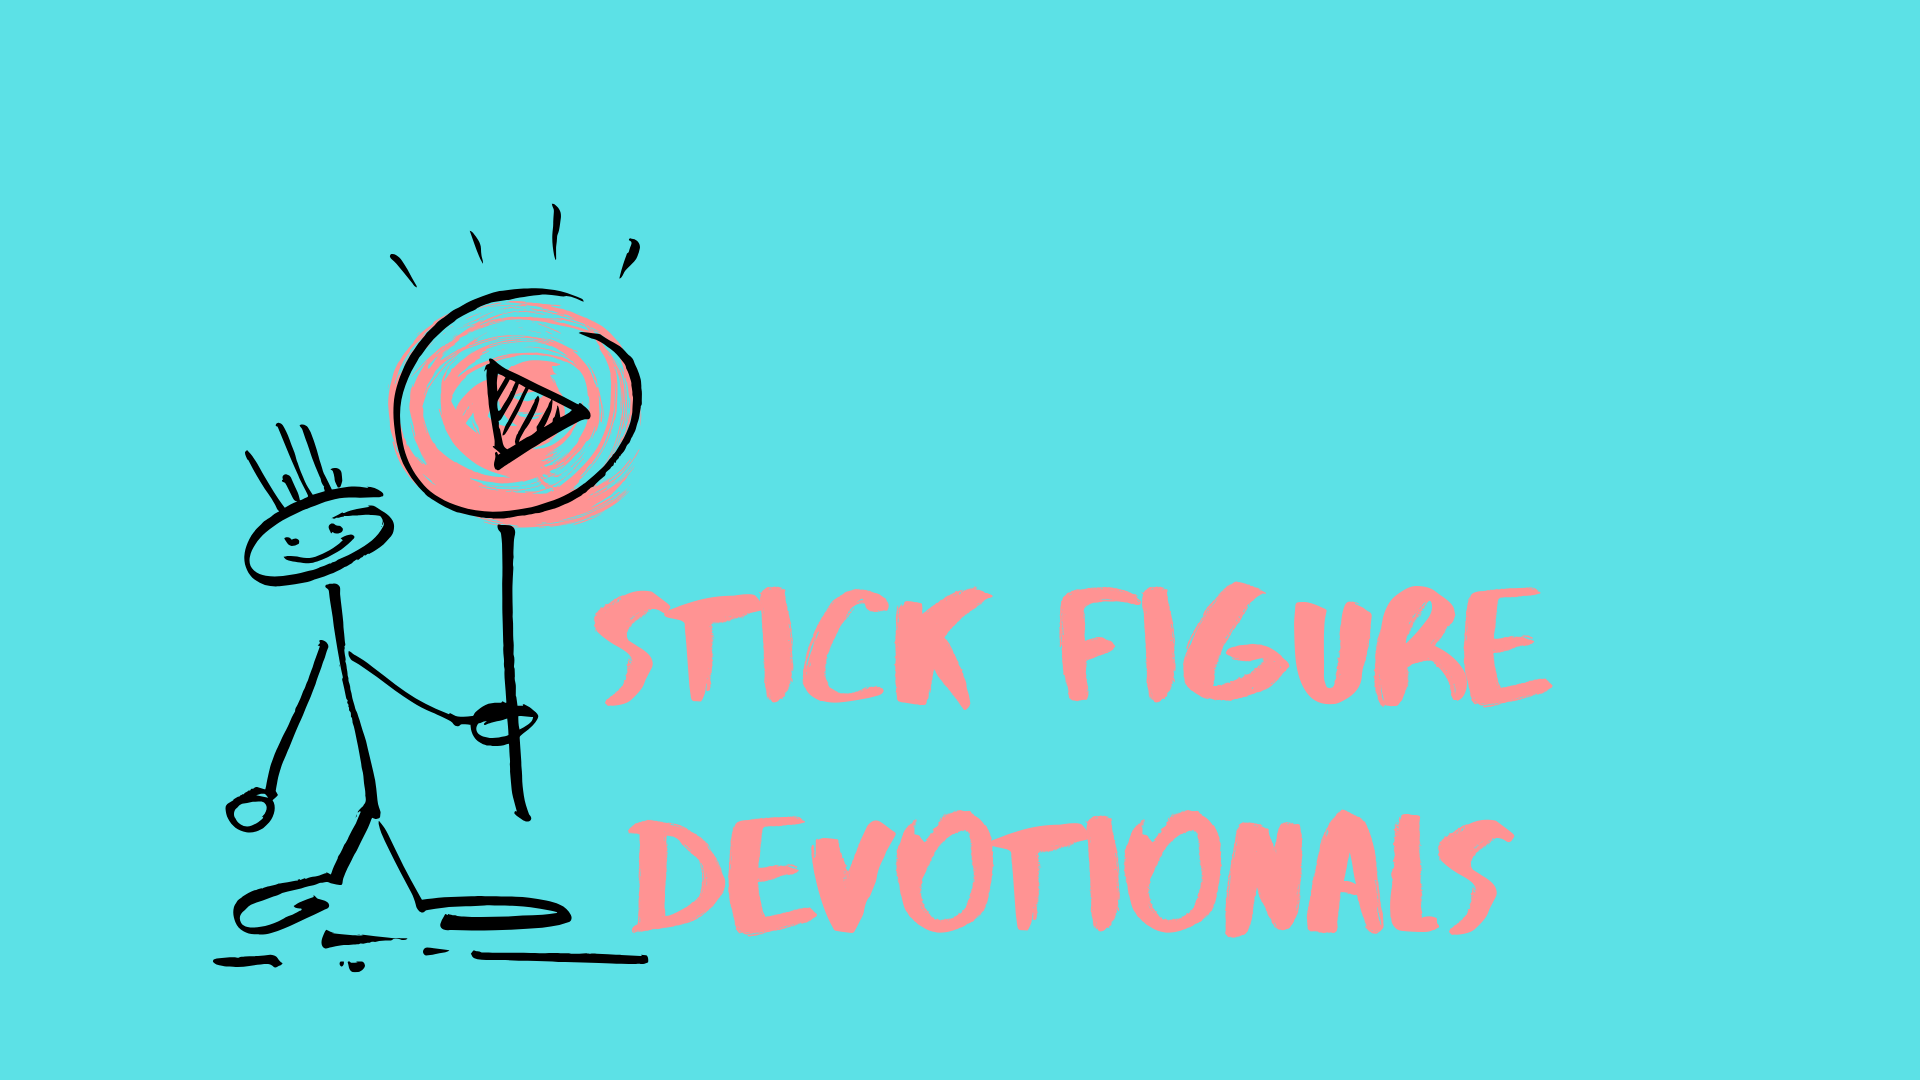 Copy of Stick Figure Devotionals.png